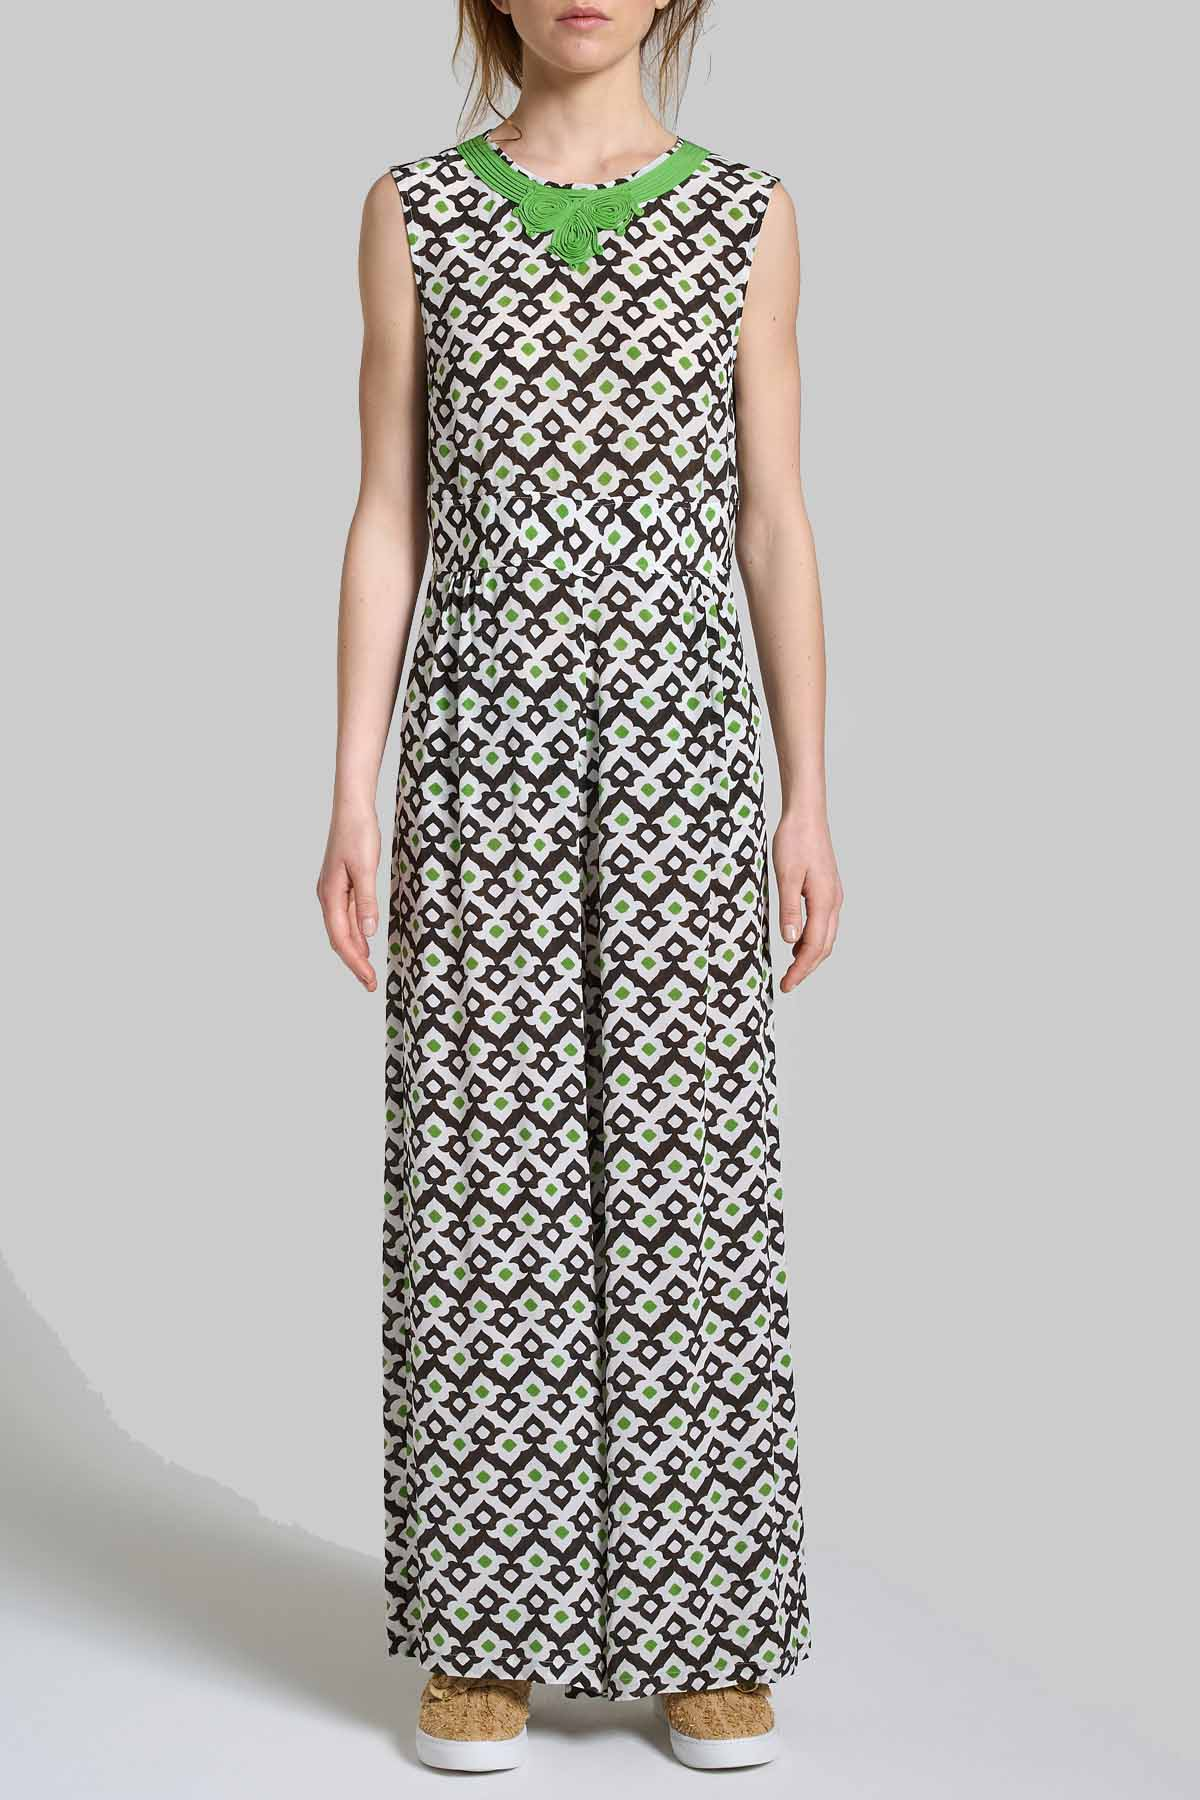 Women's Clothing Dress Long Jumpsuit Armhole Vis Ceres Diamond White and Black with Fantasy Maliparmi |  | JU001550552A1050